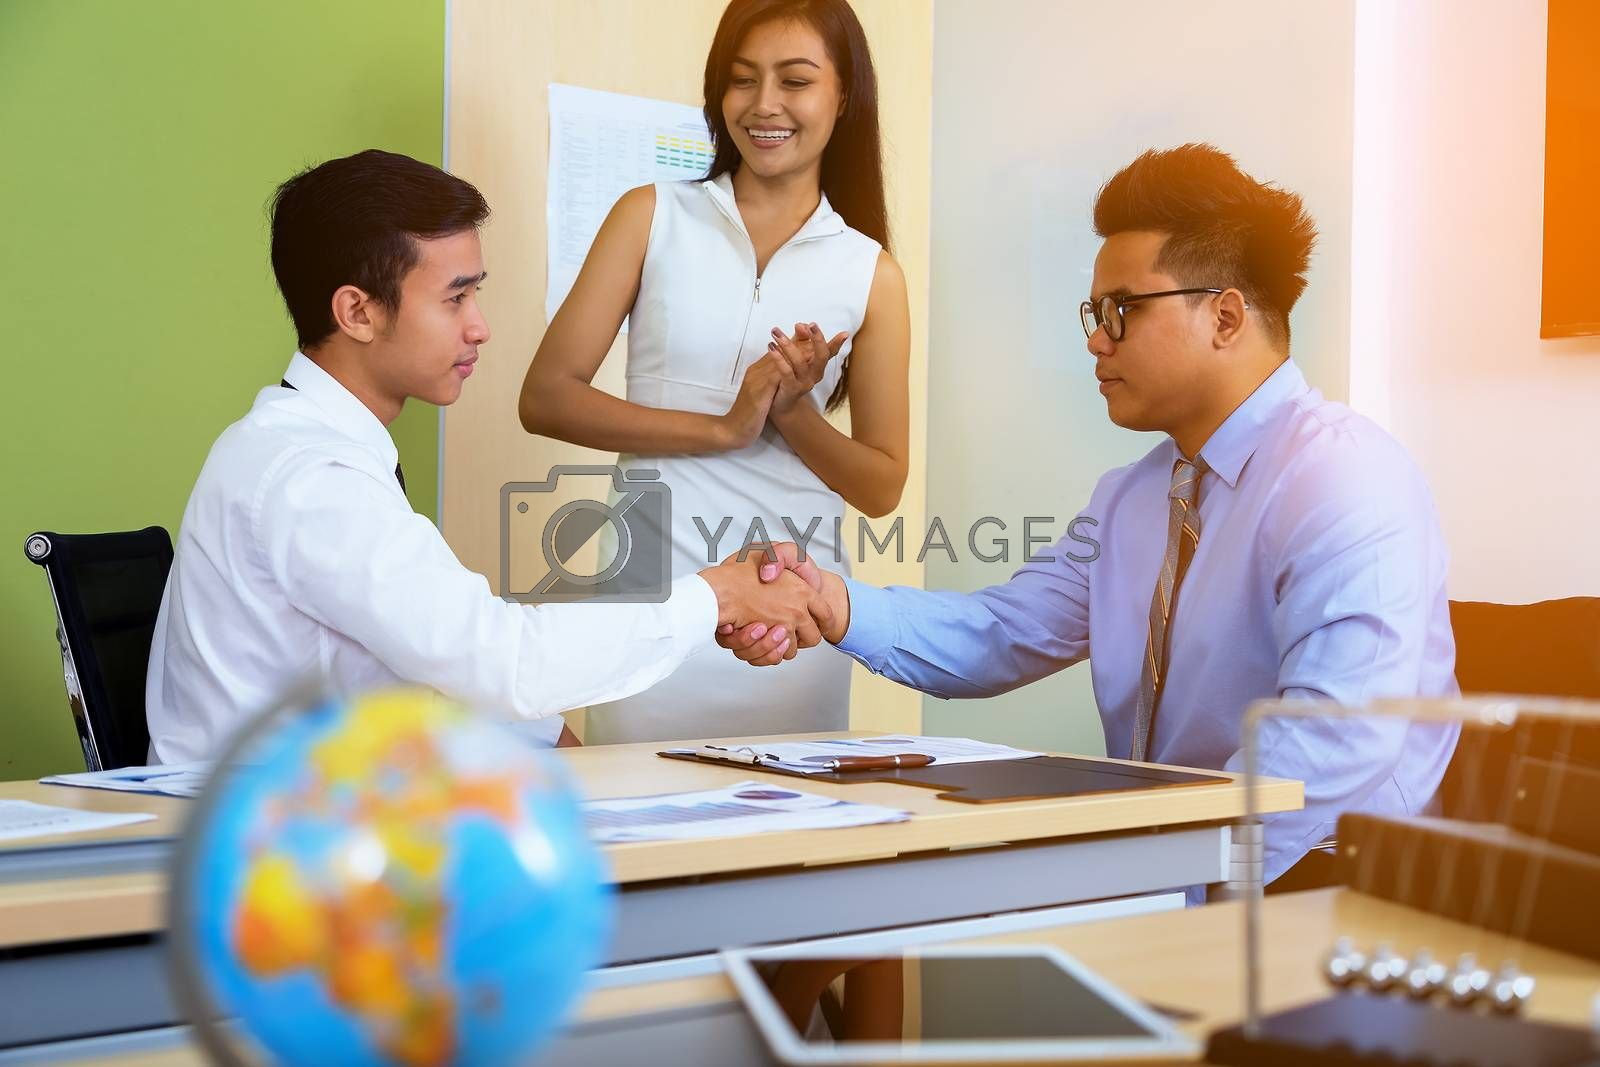 Image of a businessman joining hands after agreeing to a business deal.